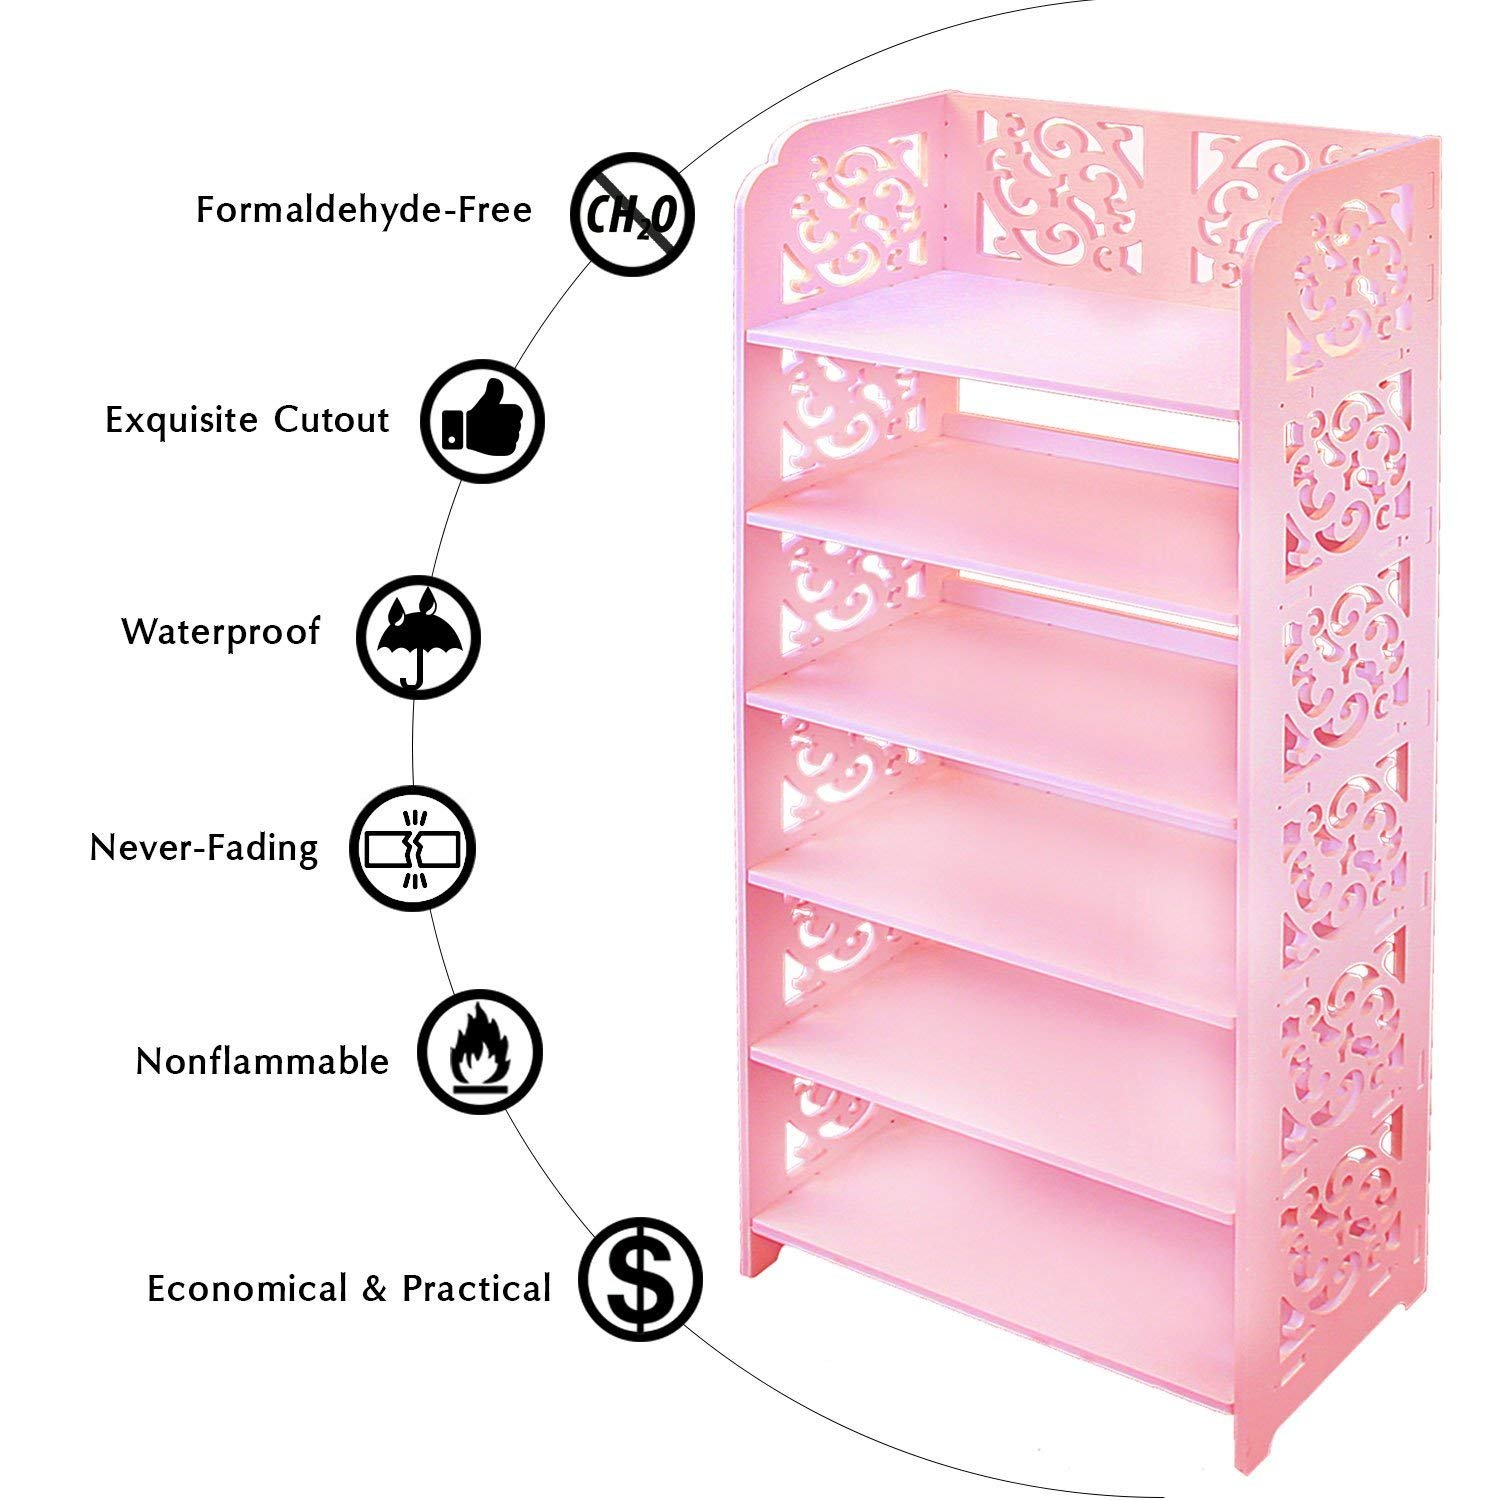 DL furniture WPC Tall 6 Tier Multipurpose Shoe Rack & Book Shelf L16.5 x W9.5 x H38 Environmental Friendly Material | Pink by DL furniture (Image #4)